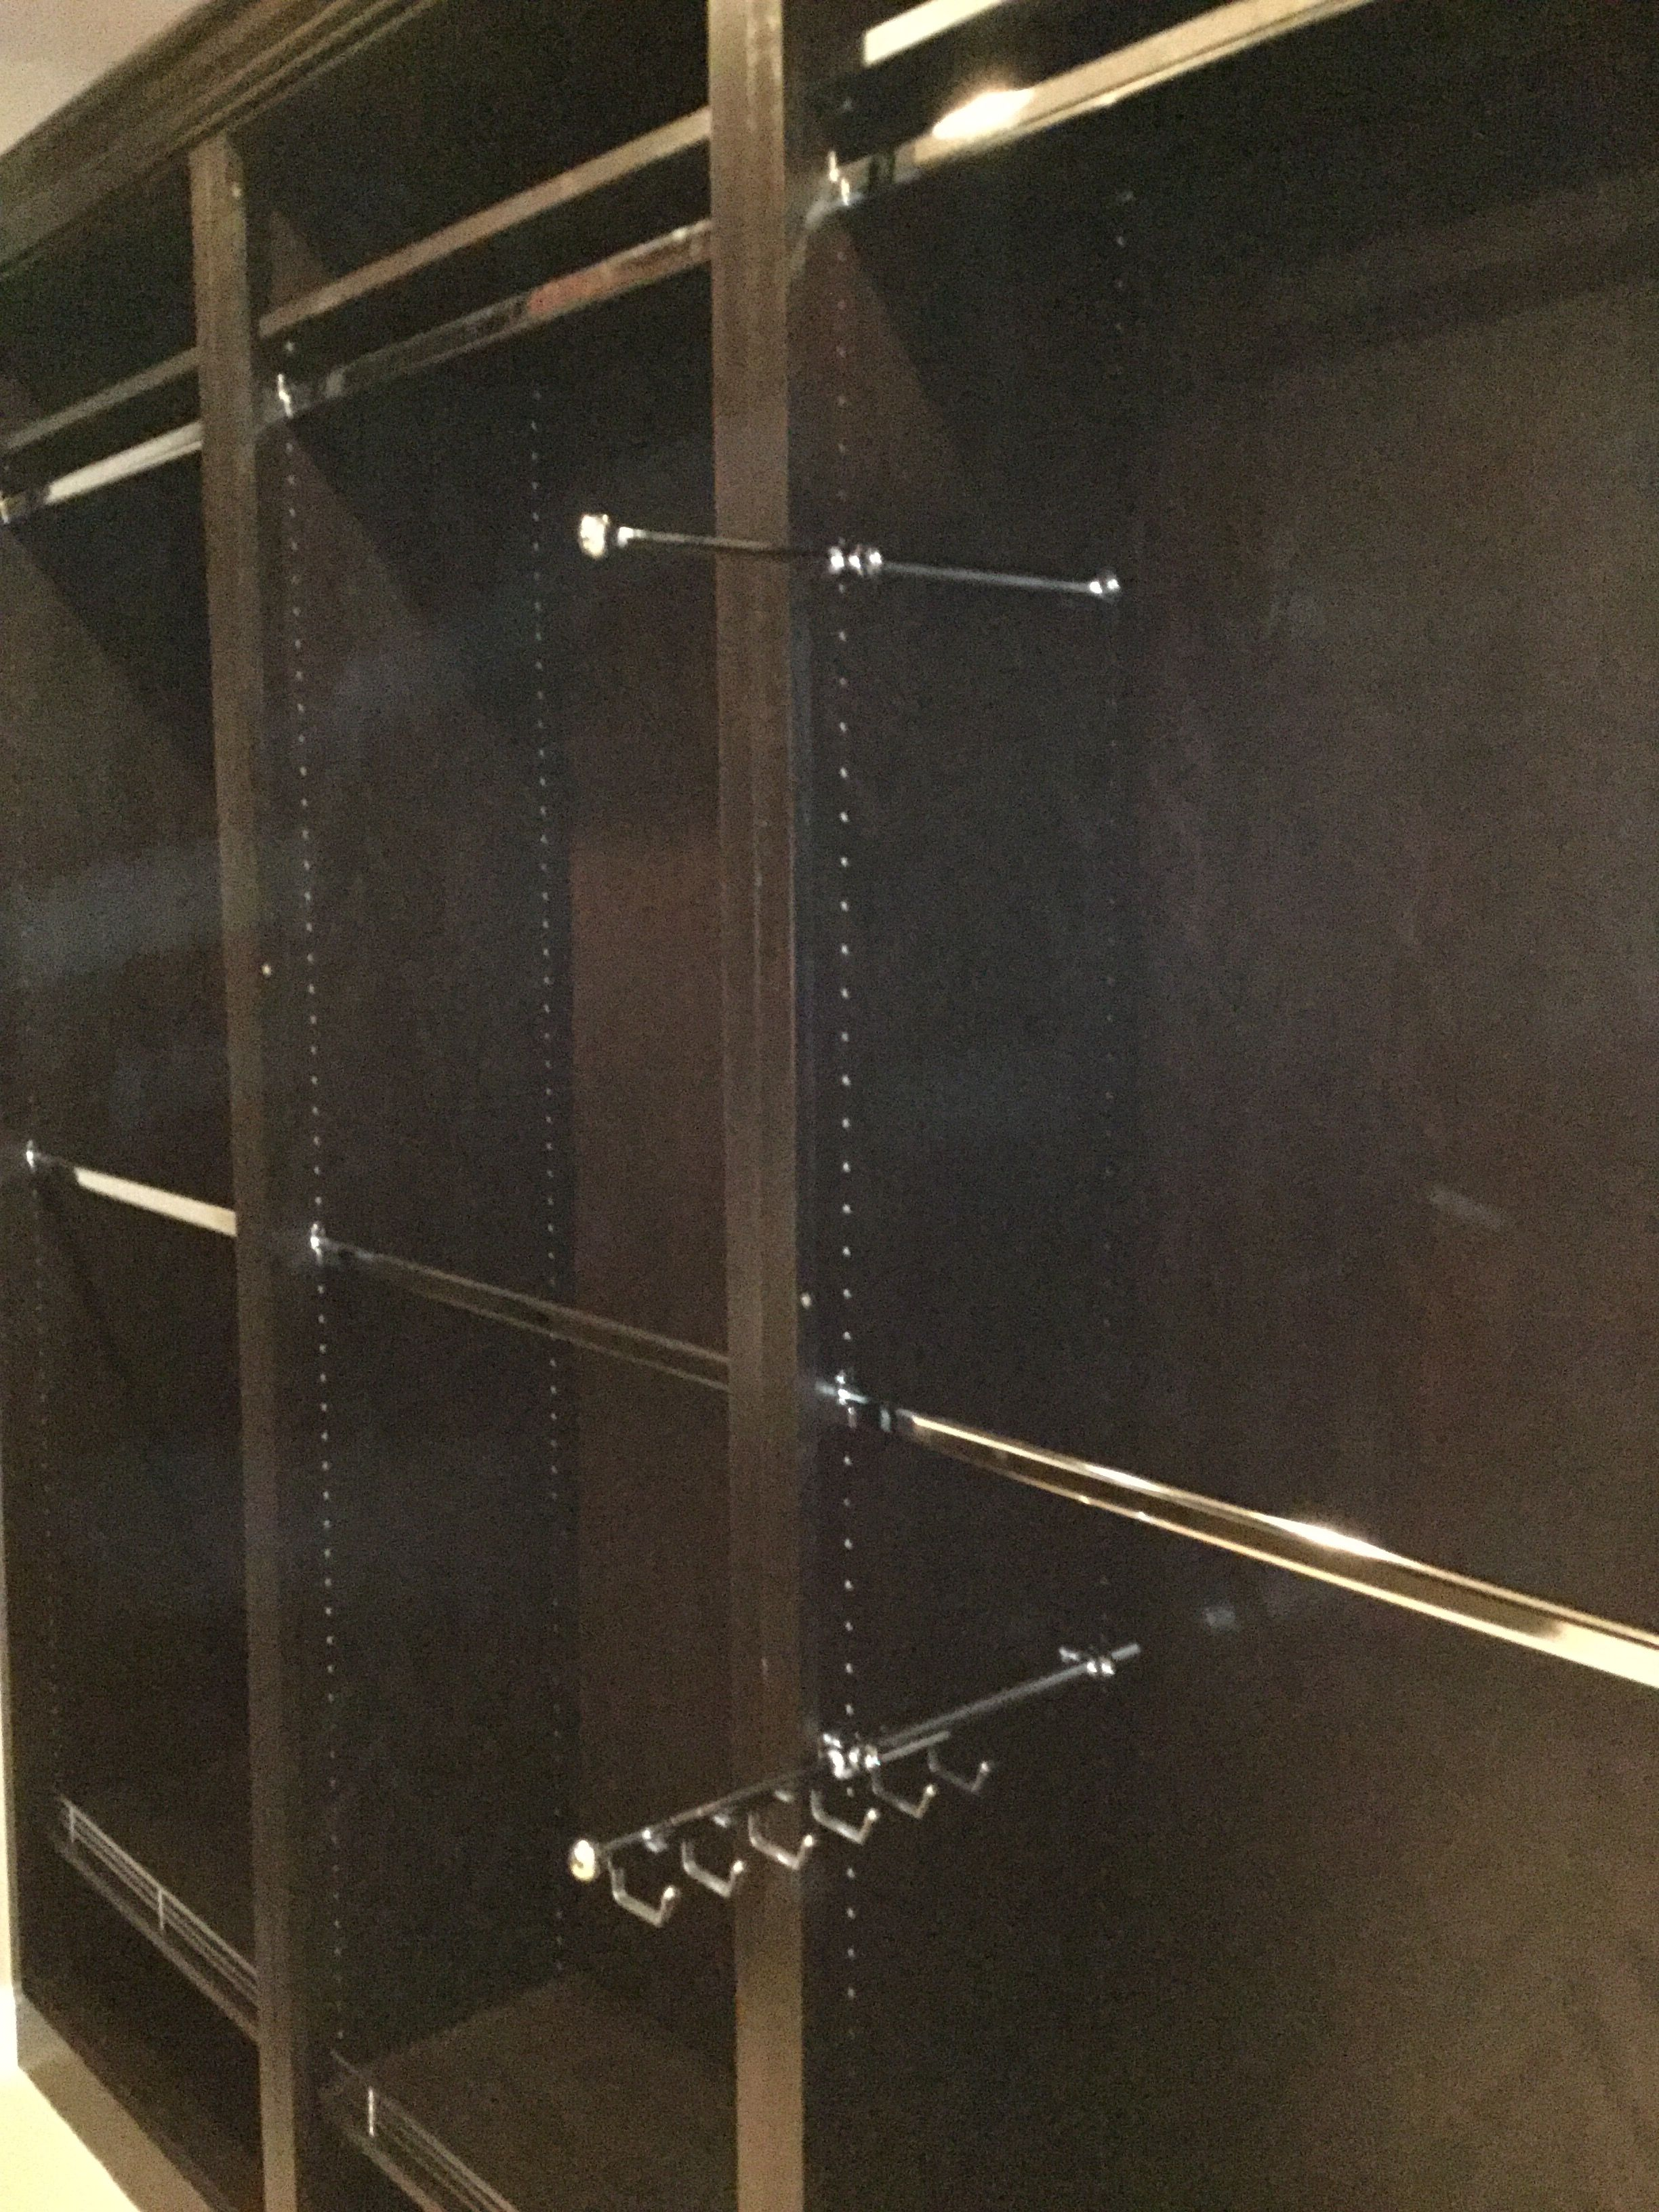 Chrome Pull Out Tie Holder, Belt Holder, And Valet. All Shelving, And